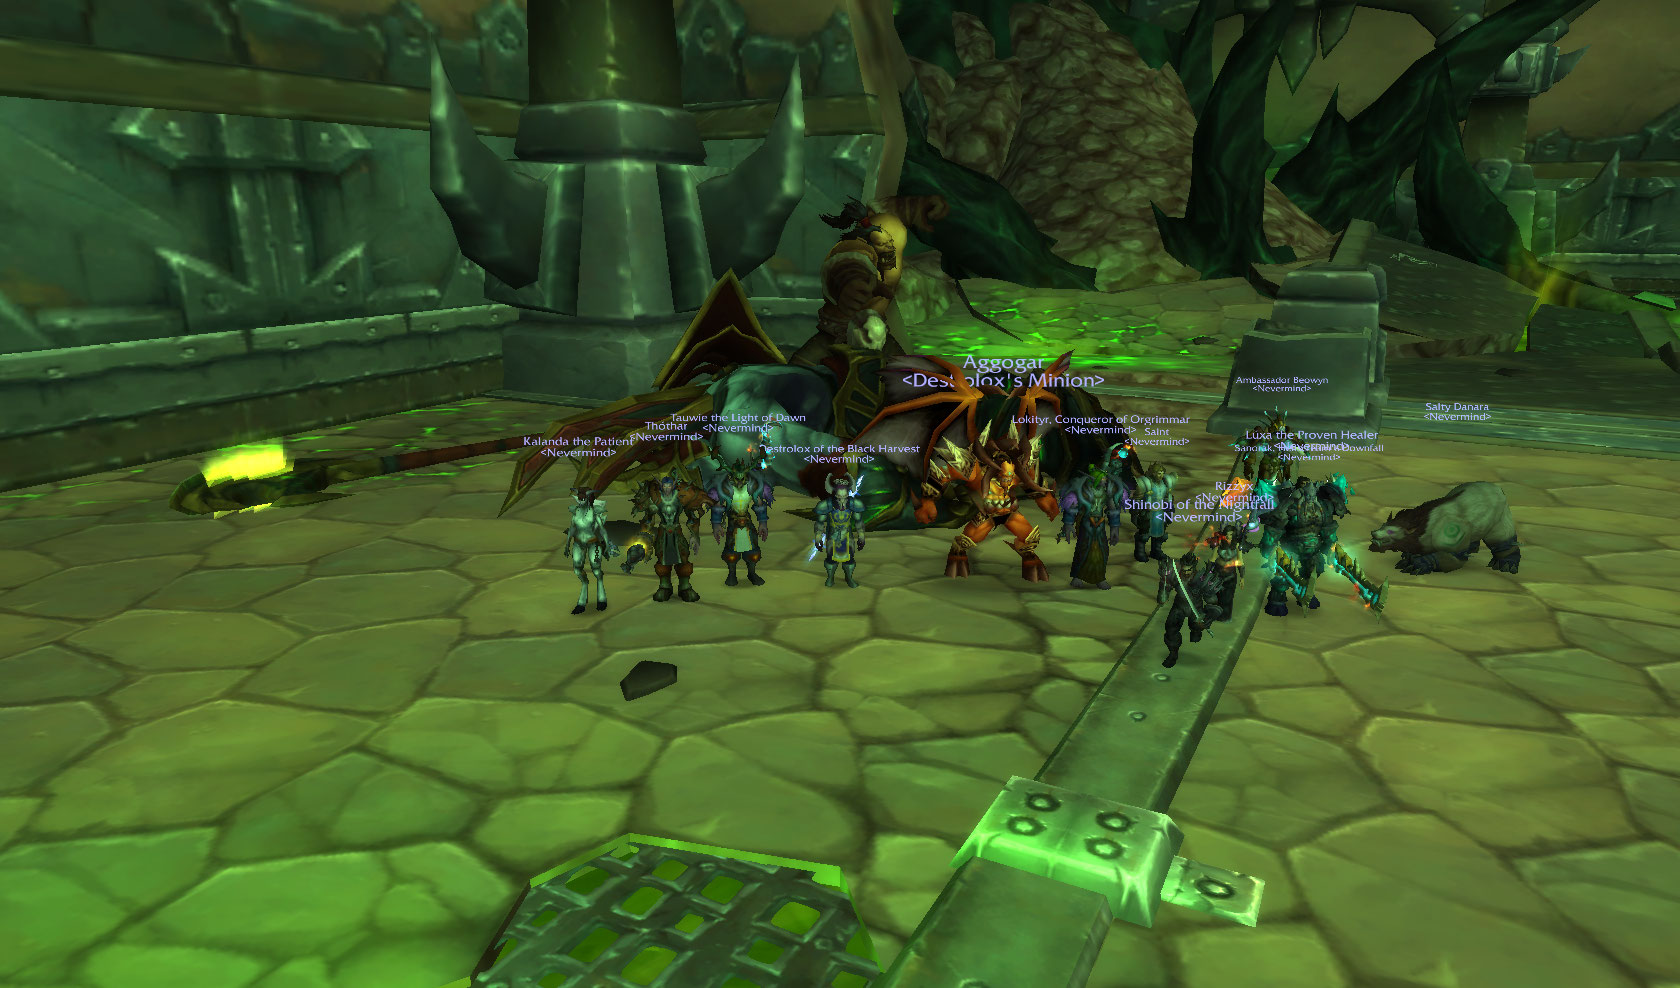 Team Fire free Grommash and kill Fel Lord Zakuun along the way!